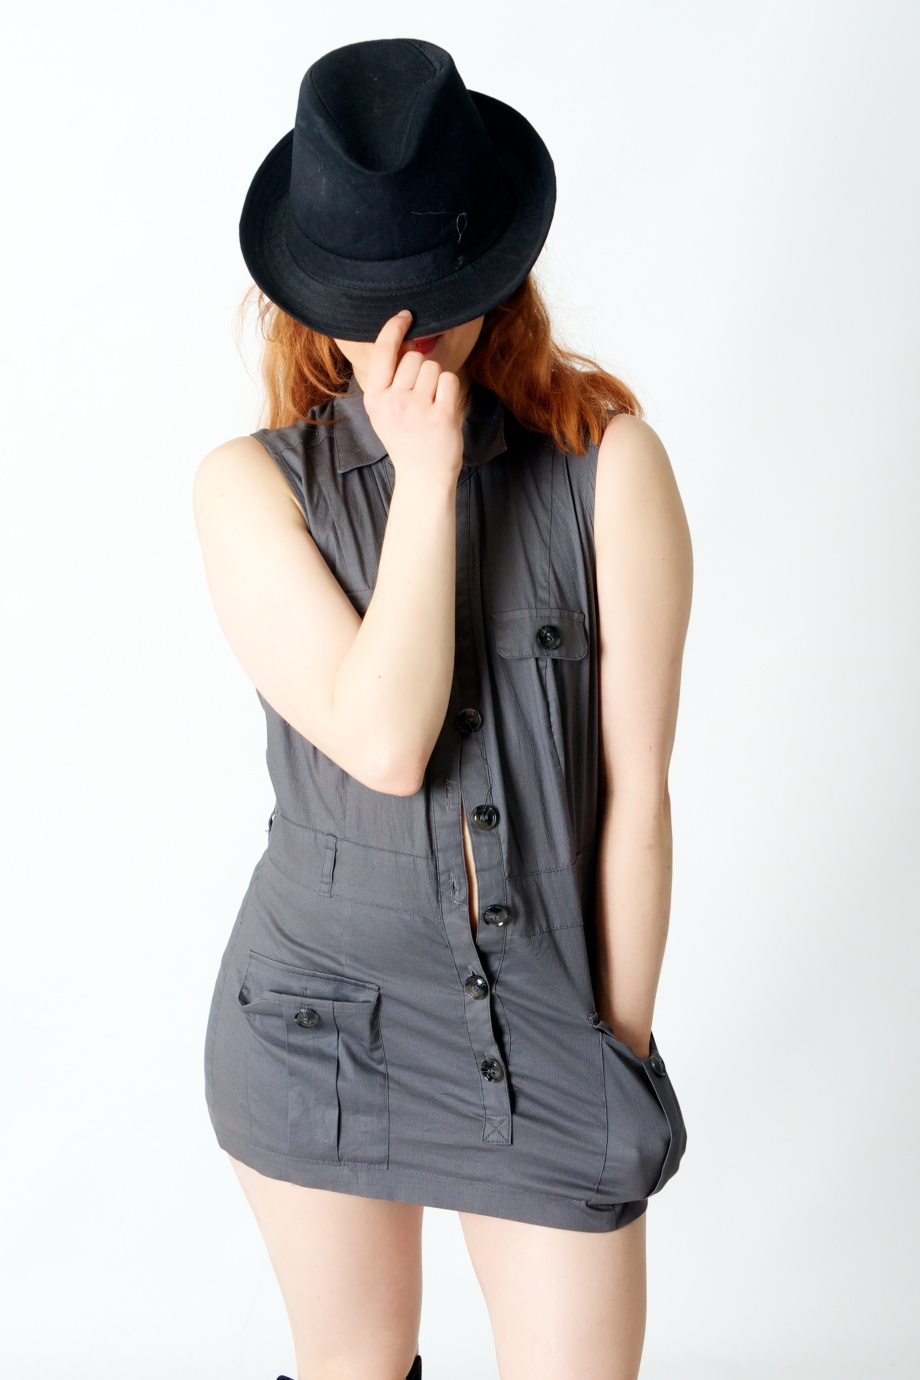 Roksi, Applecore, Cork, Model, Studio, Photoshoot, Glamour, Portrait, red hair, hat